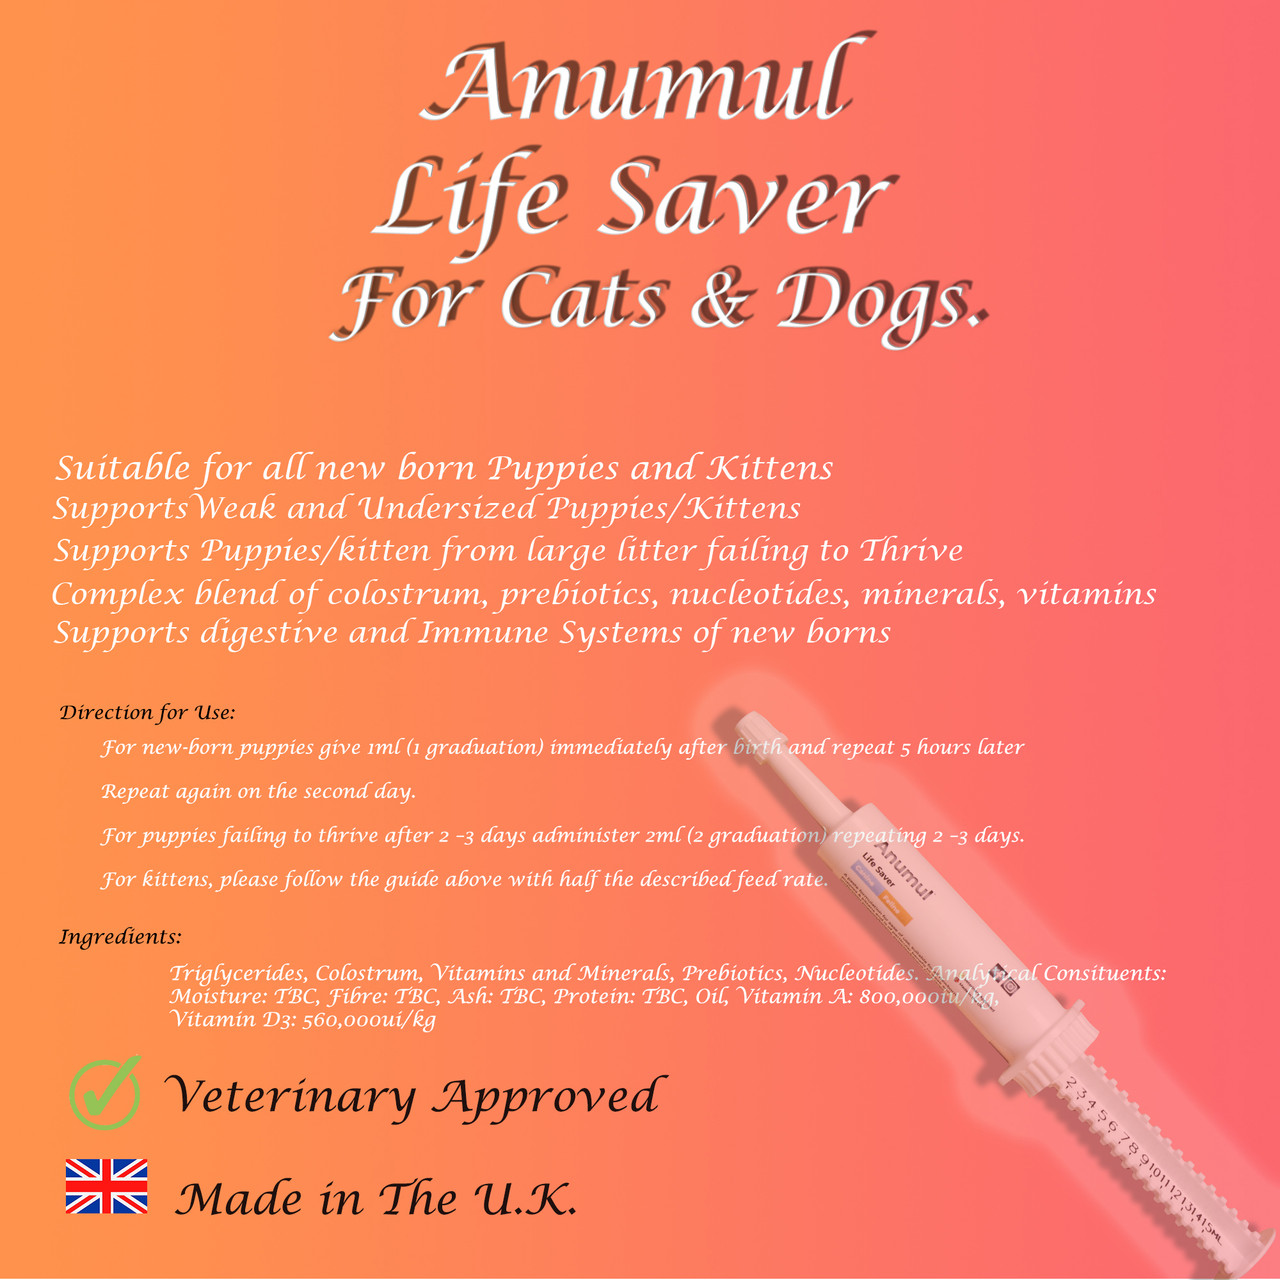 Anumul Life Saver Supports Immune and Digestive Systems for New Born Puppies and Kittens